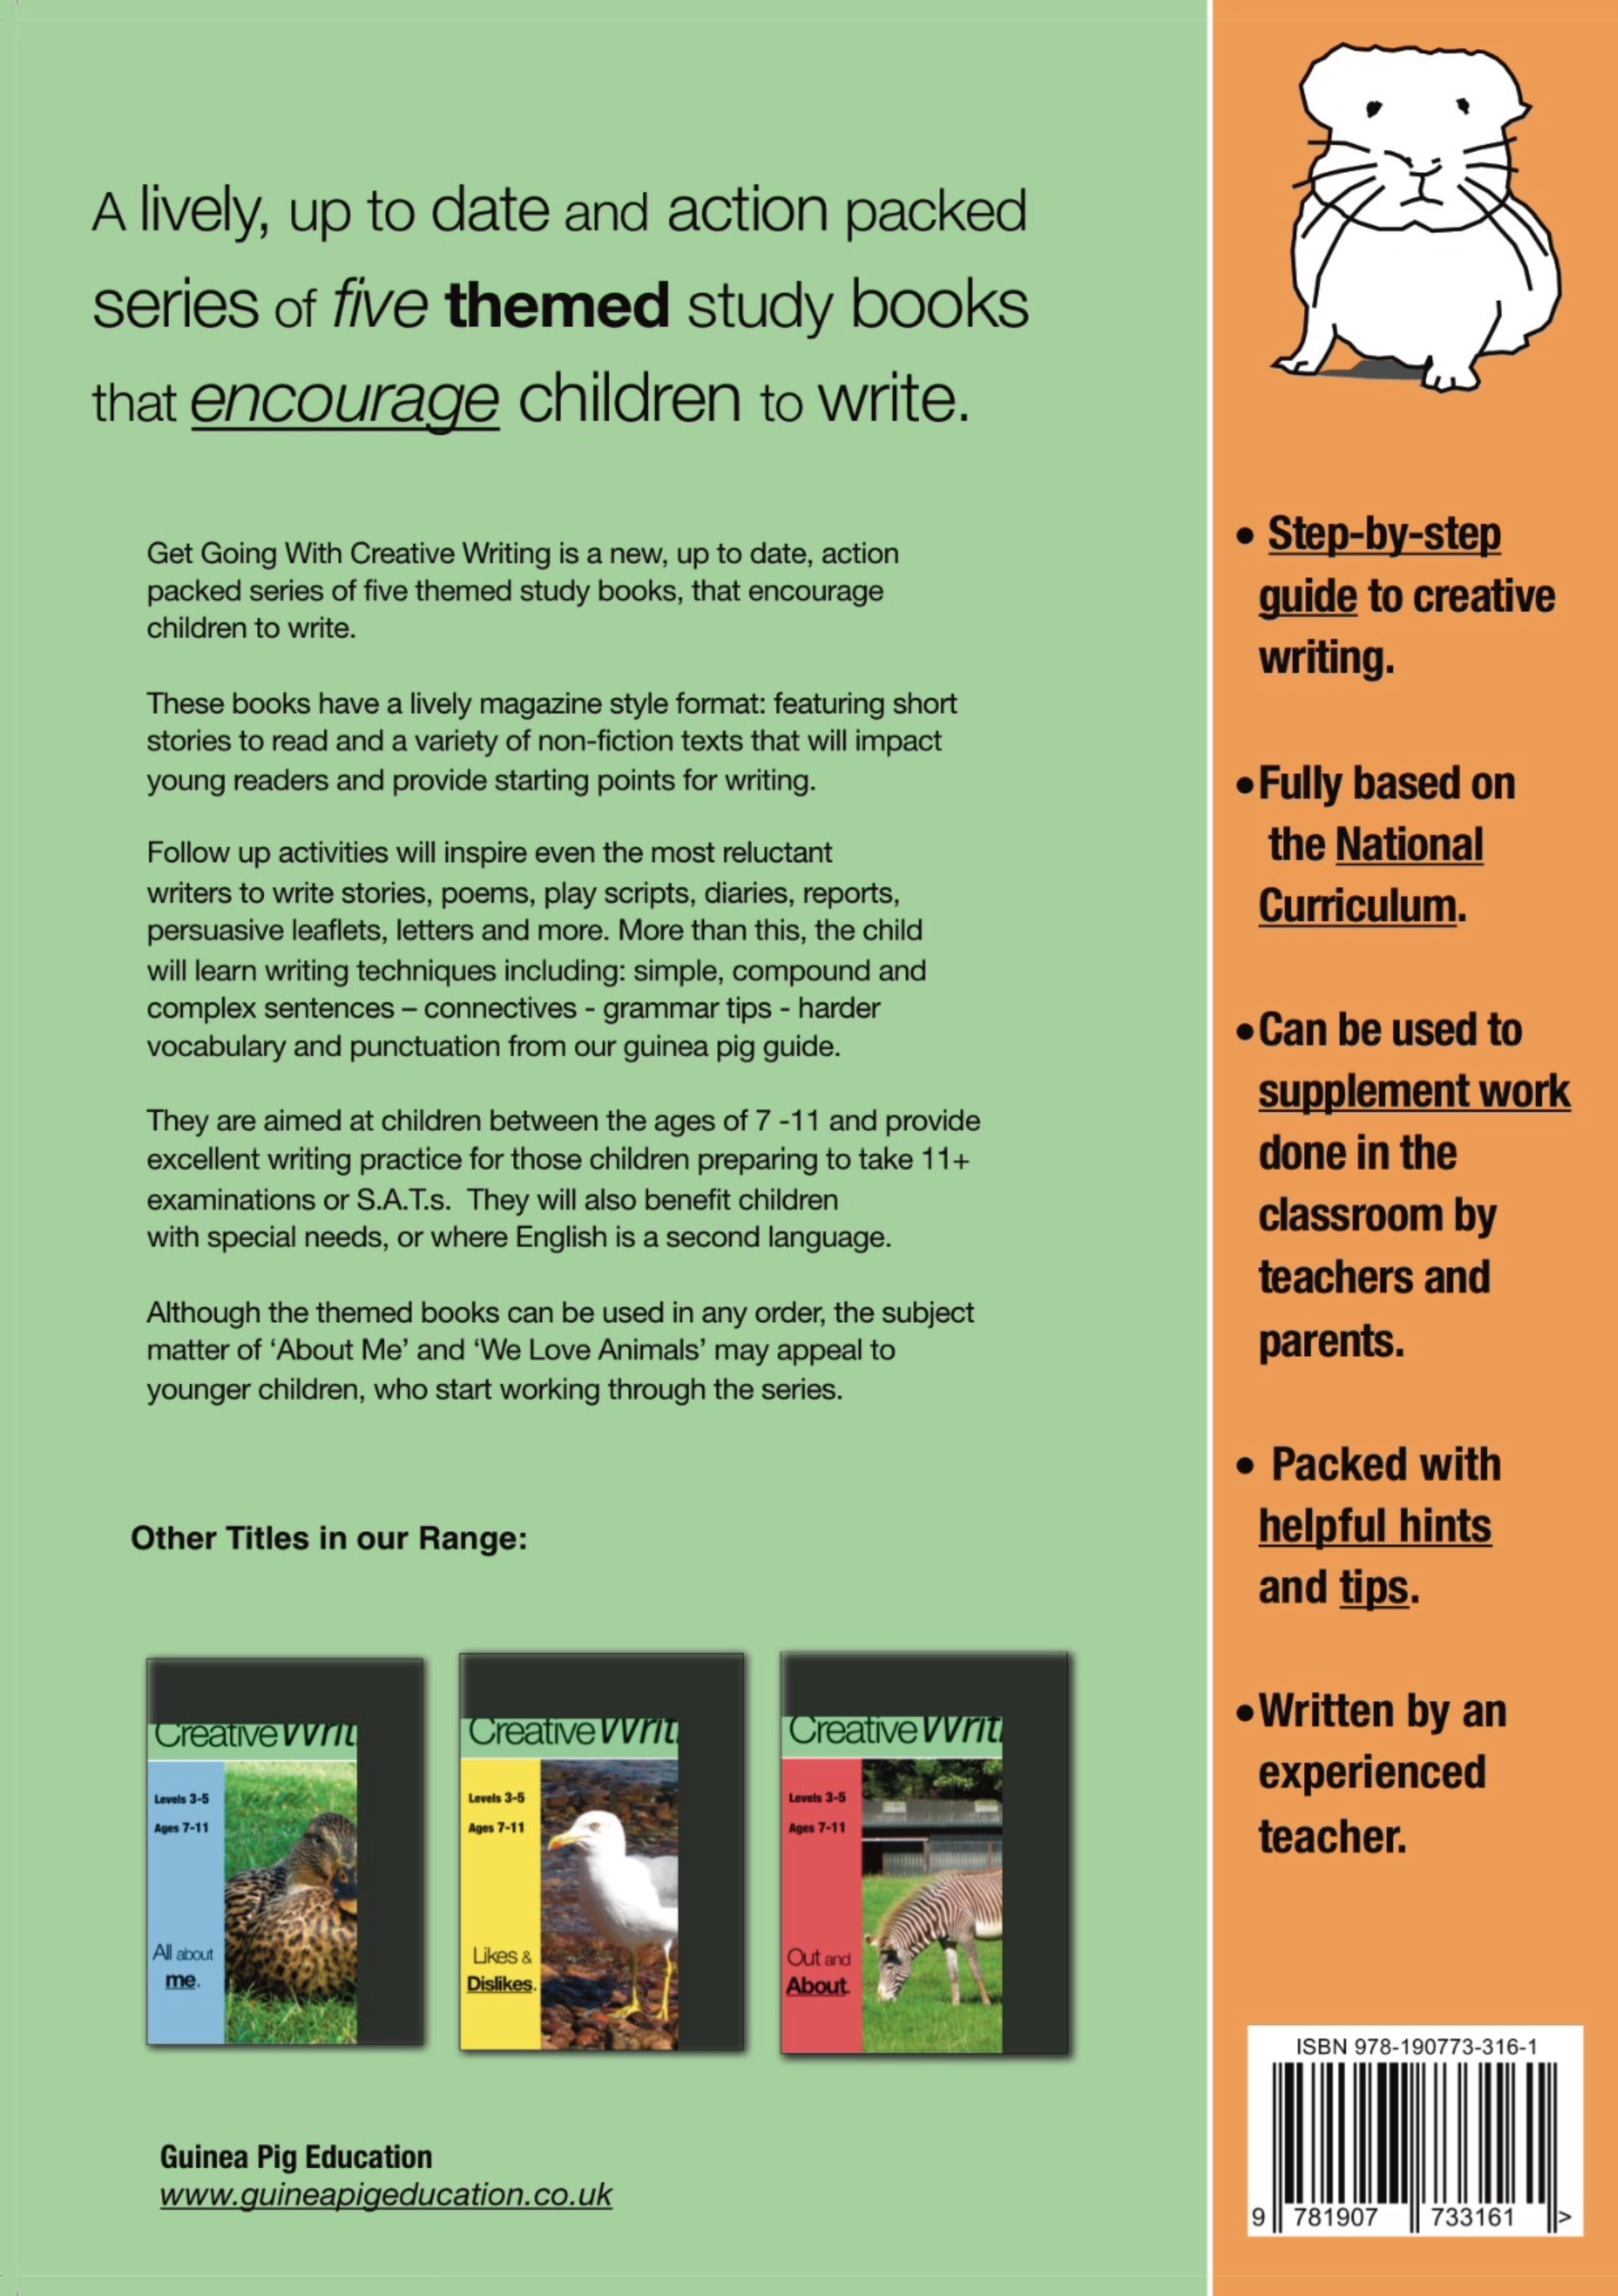 Get Going With Creative Writing (Complete Series books 1-5) (7-11) Digital Download